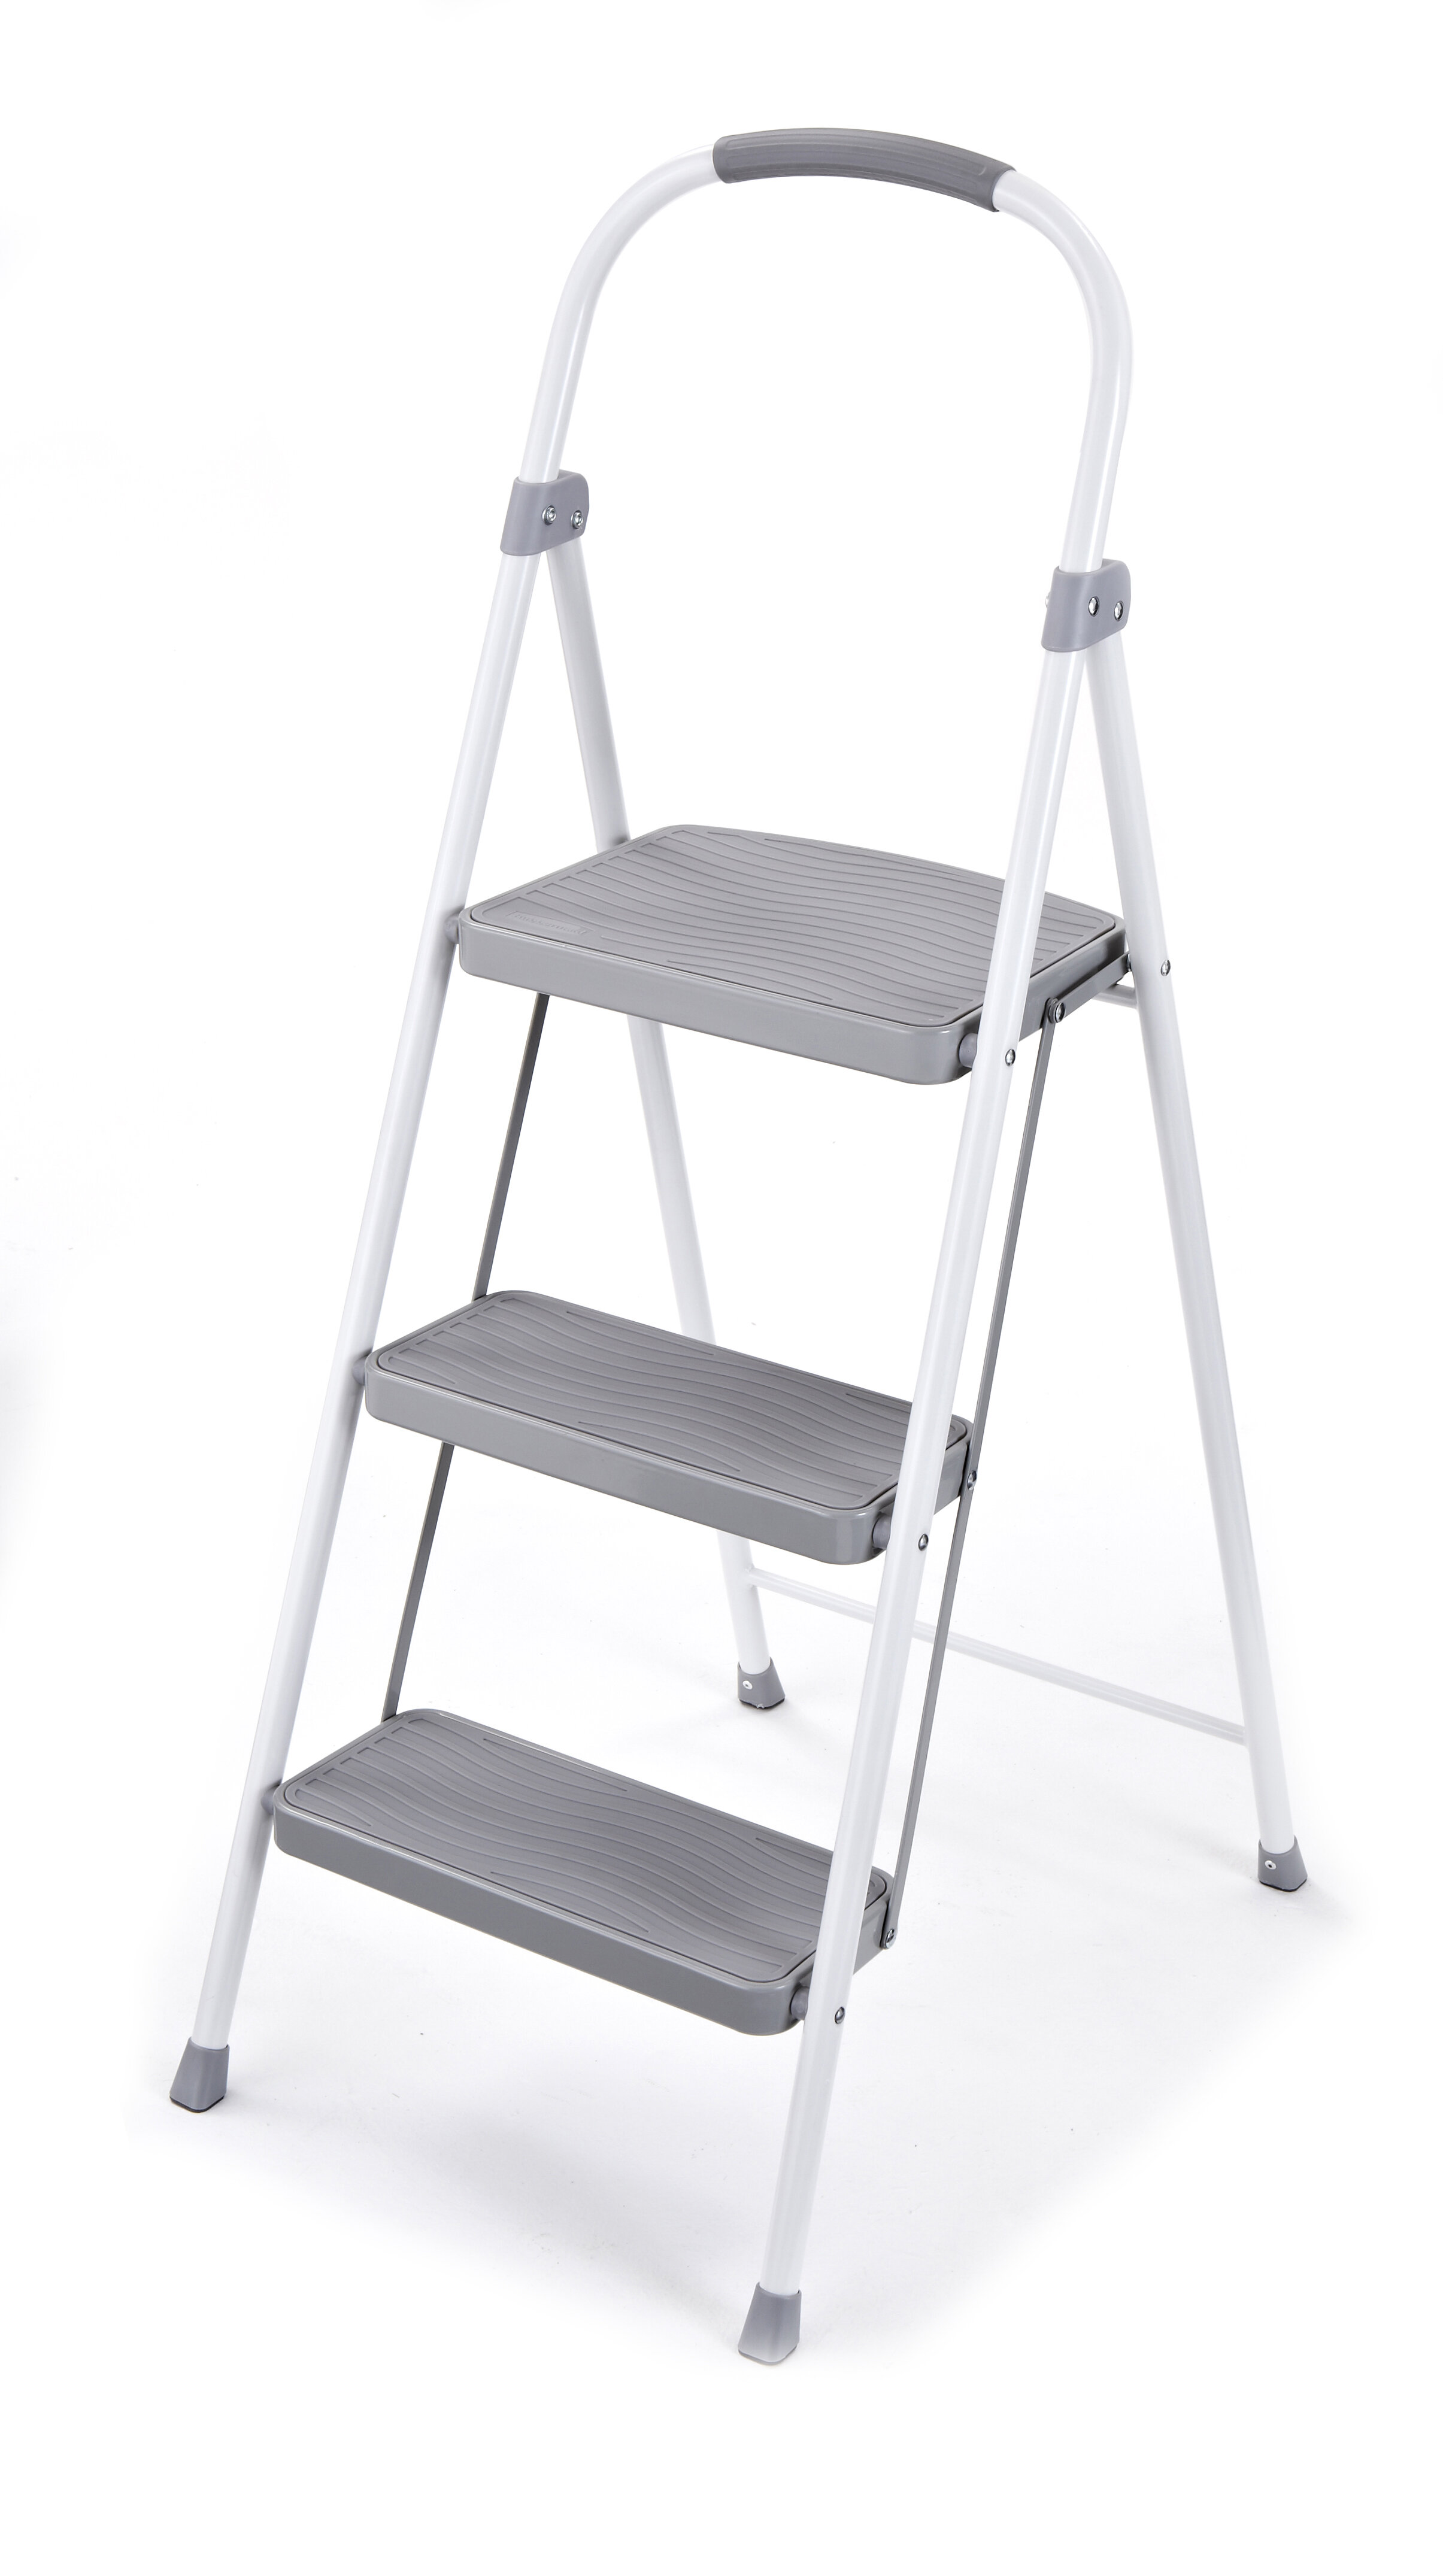 Outstanding 3 Step Steel Step Stool With 225 Lb Load Capacity Pabps2019 Chair Design Images Pabps2019Com